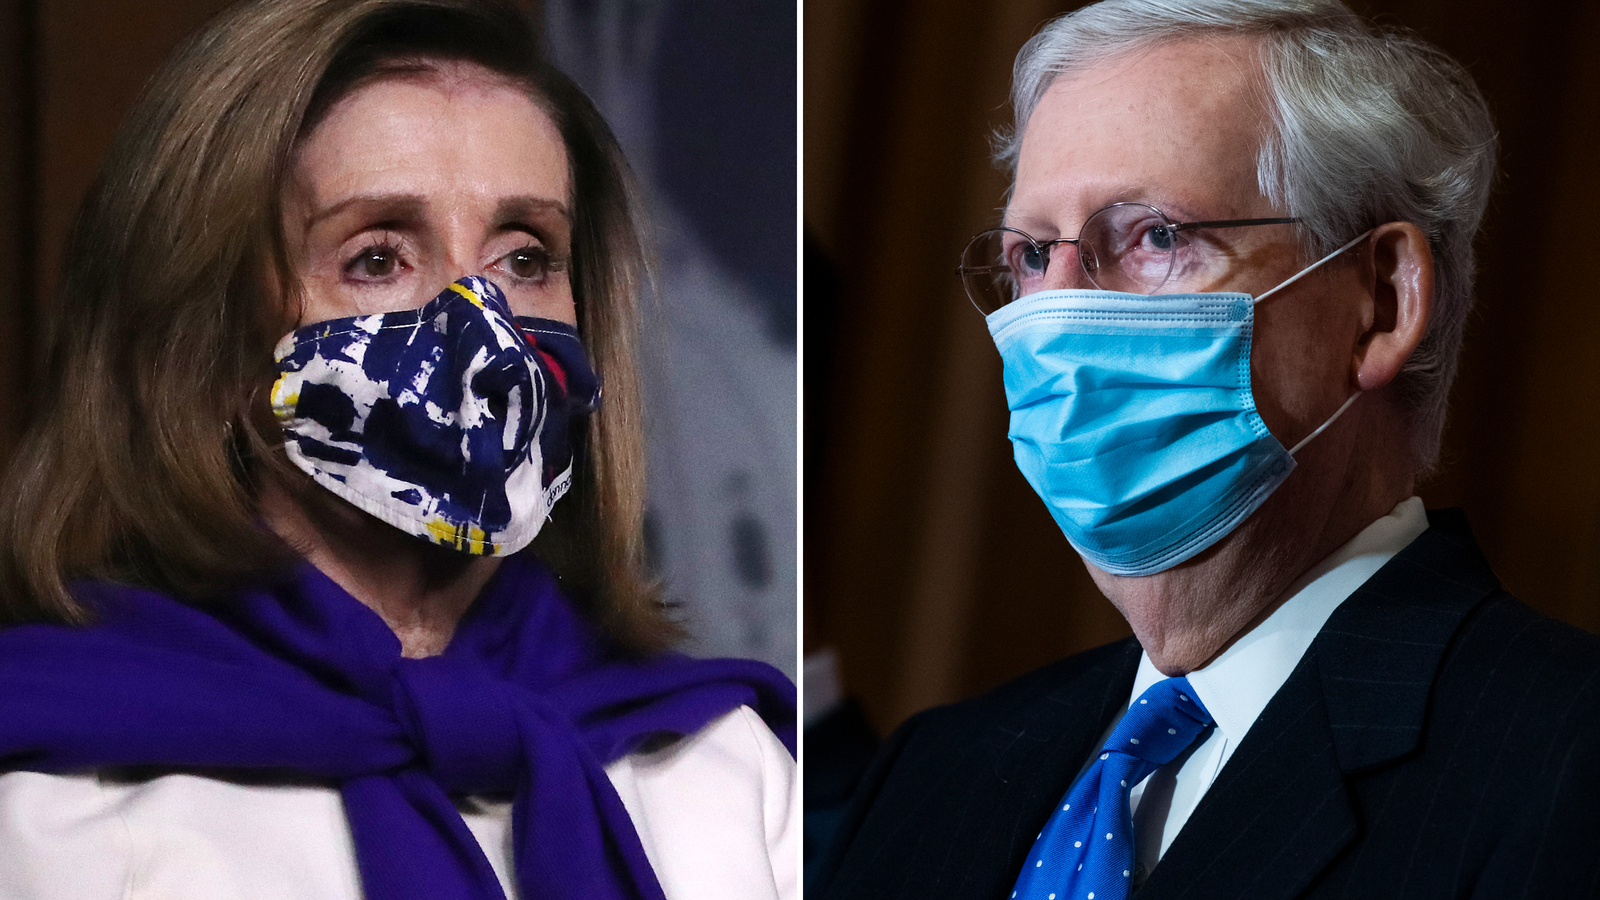 House Speaker Nancy Pelosi, left, and Senate Majority Leader Mitch McConnell.